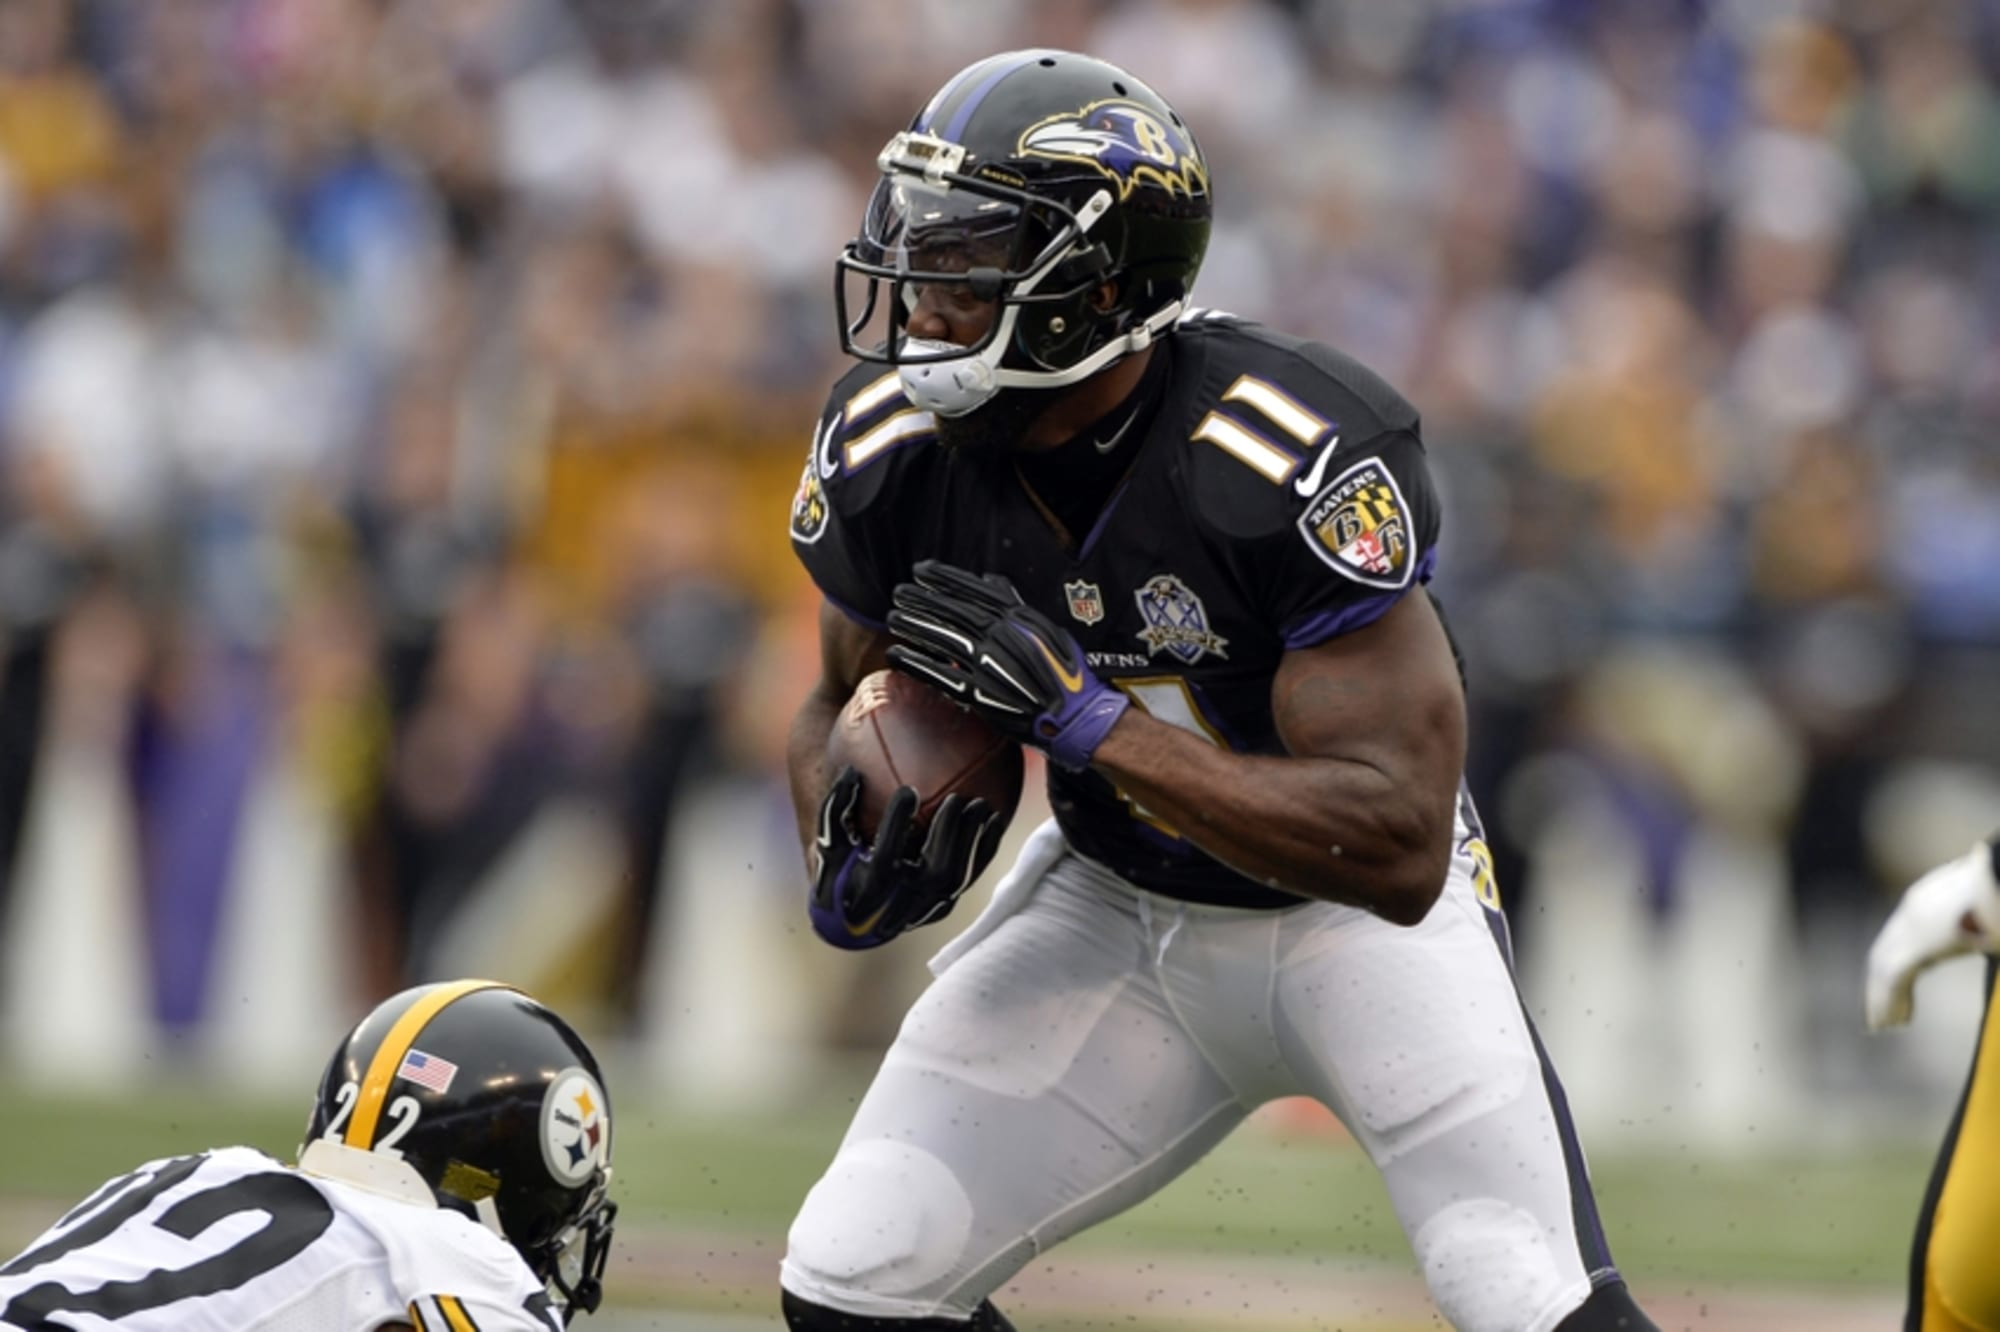 Kamar Aiken is one of the best values in the NFL